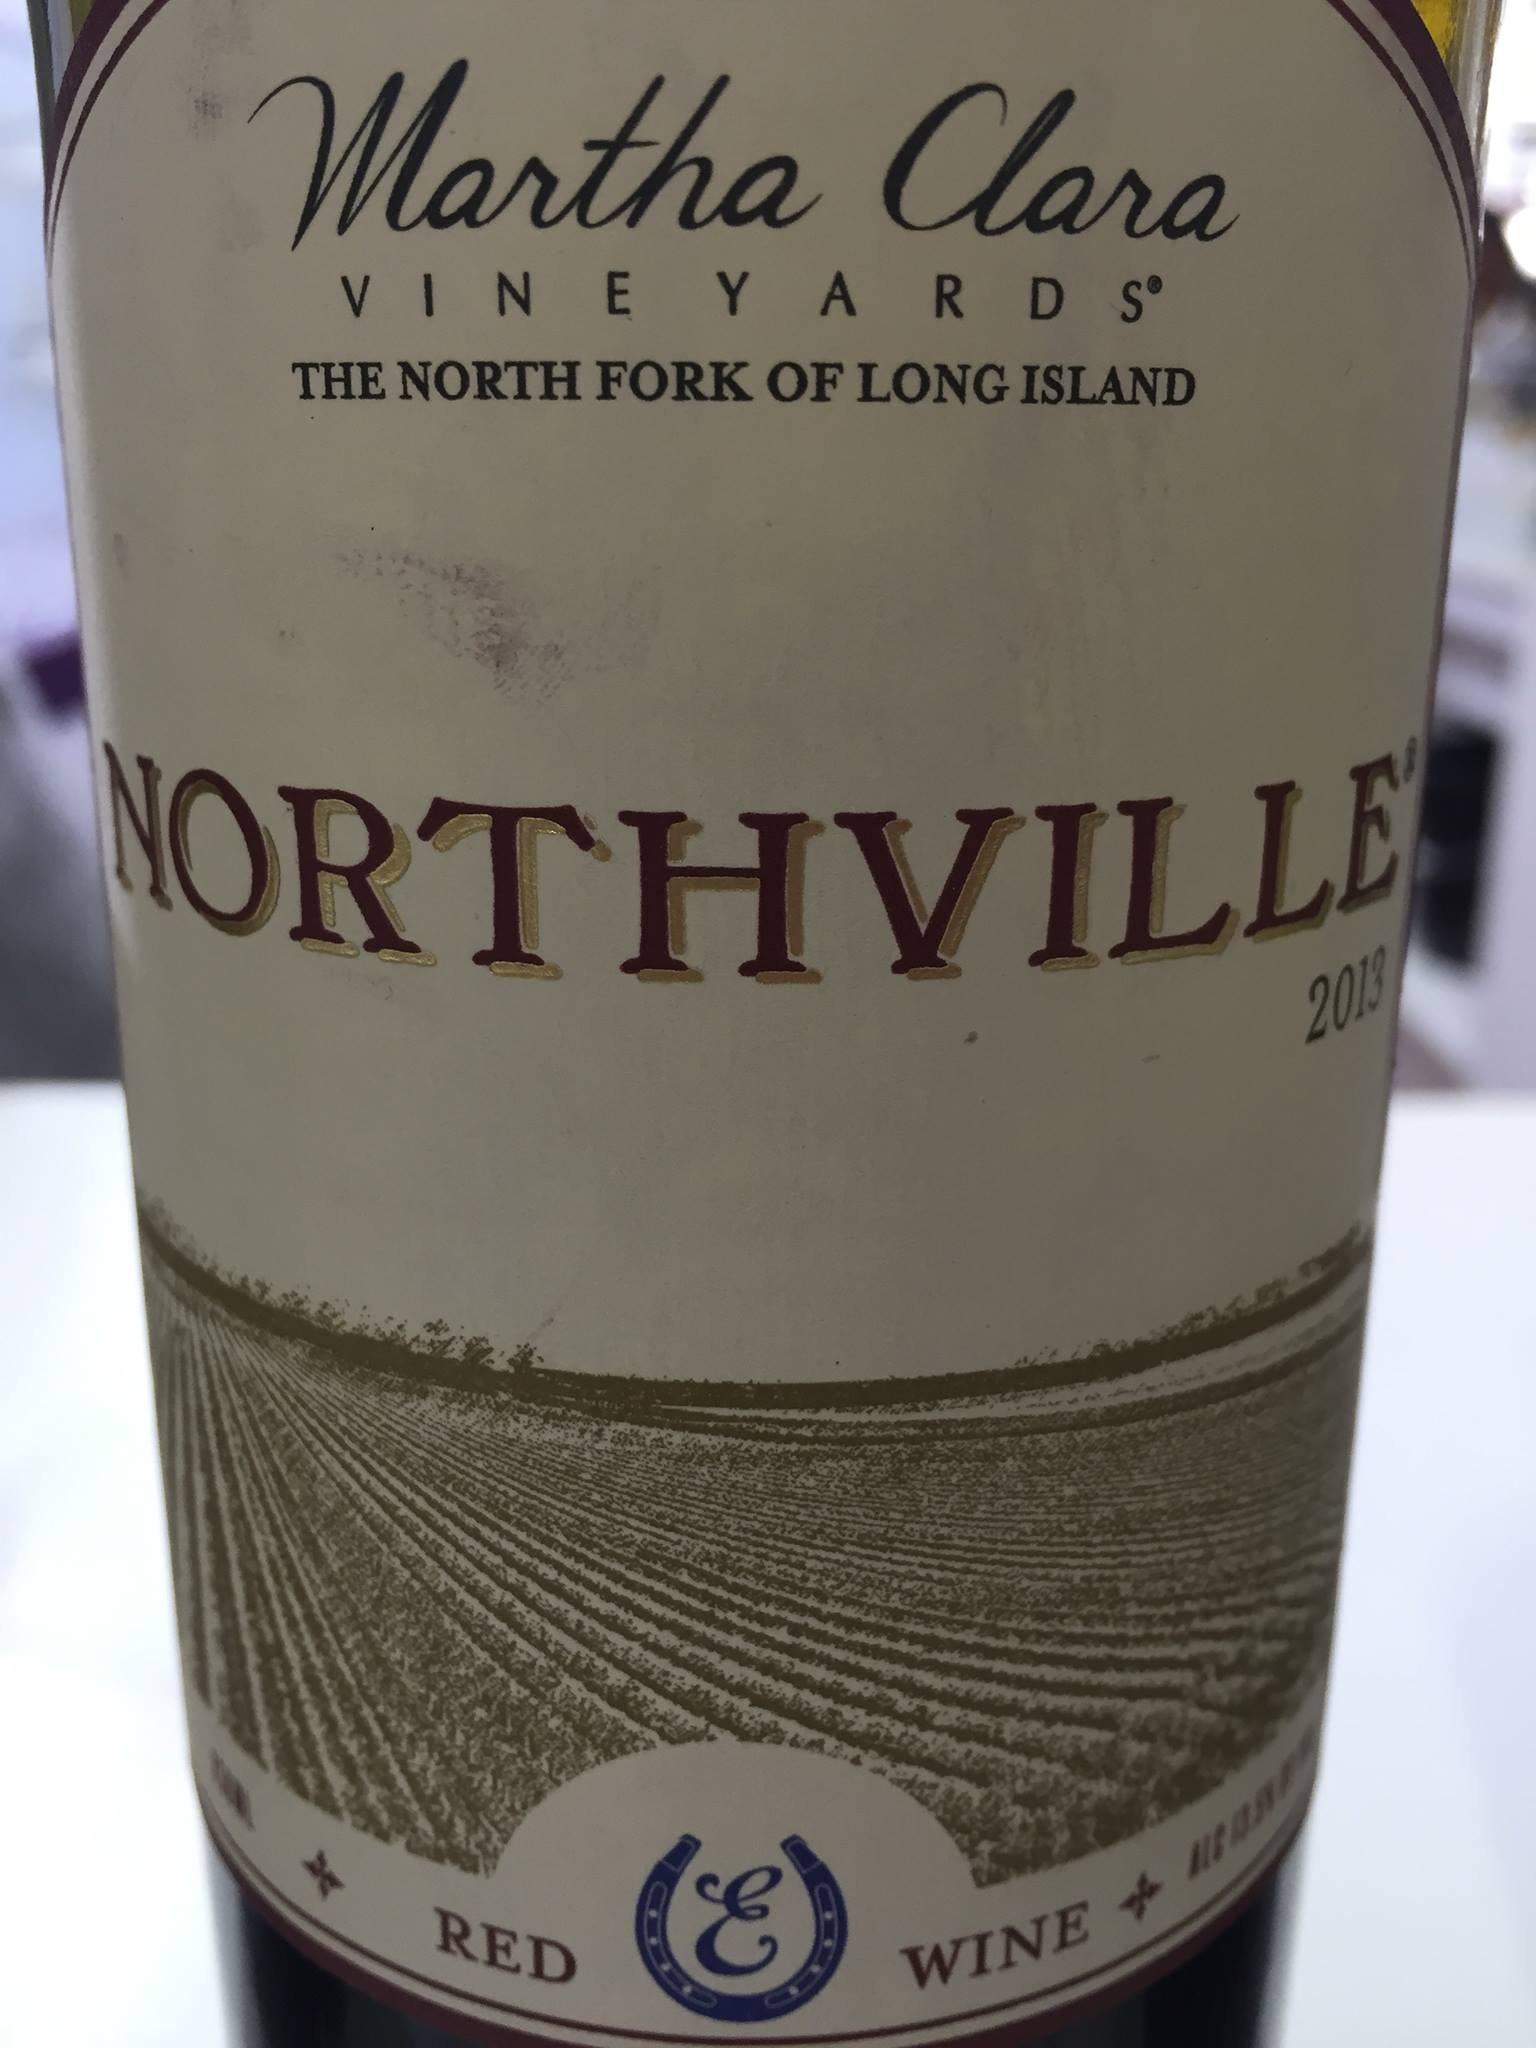 Martha Clara Vineyards – Northville 2013 – The North Fork of Long Island